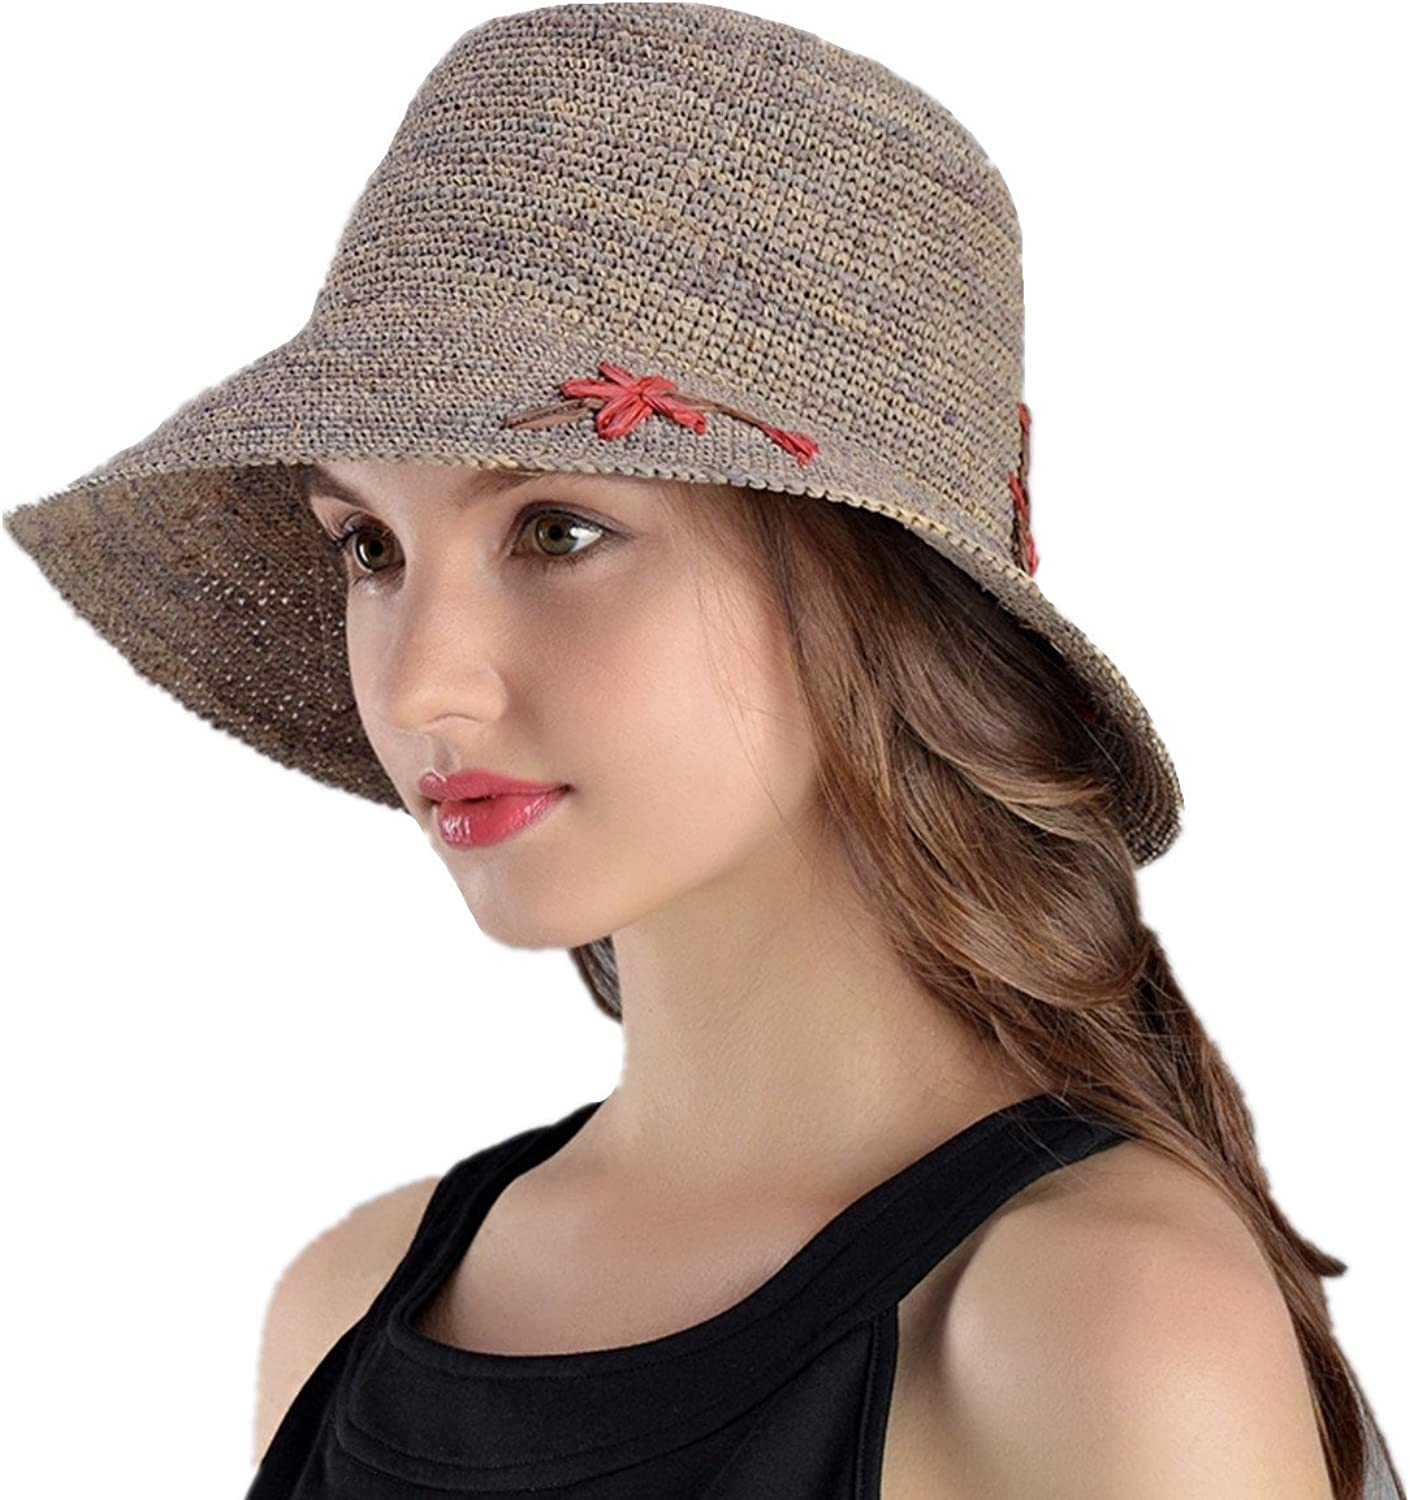 XINFU Women's HandWoven Foldable UPF50+ Wide Brim Embroidery Raffia Straw Hat